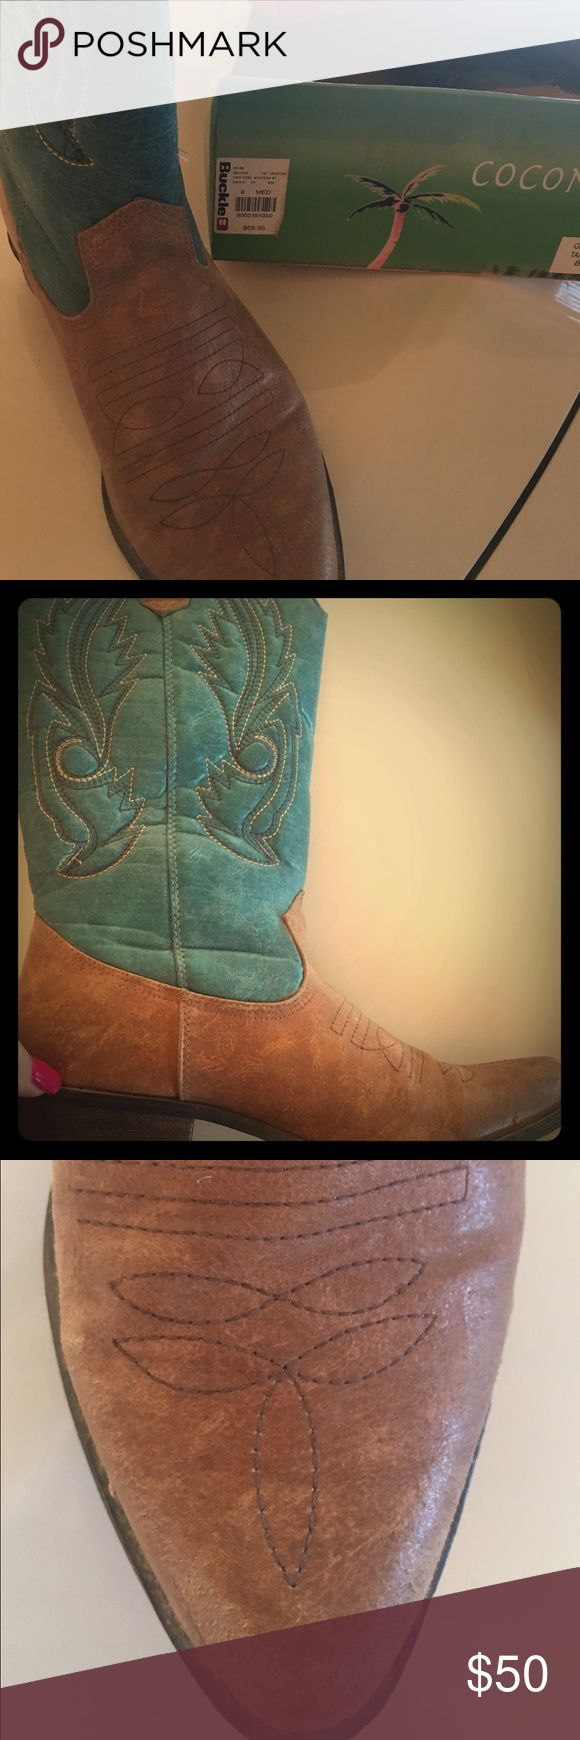 Cowboy boot with turquoise top. Nice leather cowboy boots with turquoise top. I bought them at The Buckle (as shown on the tag in pic) to wear with an outfit. I wore them 3 times. They are like brand new. I just never wear them anymore. Coconuts  Shoes Heeled Boots